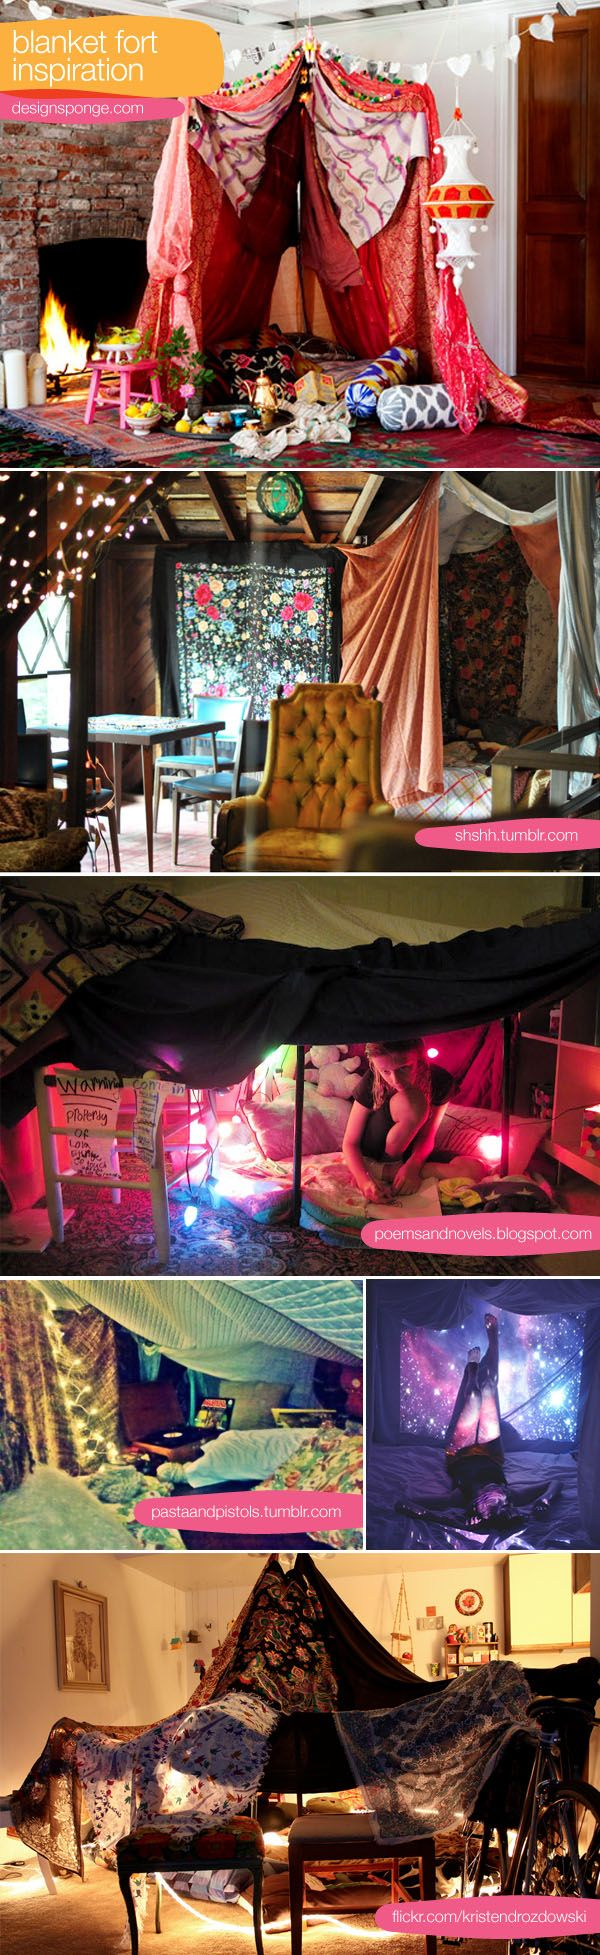 blanket fort inspiration. clay's is going to be epic this year. i have been collecting fabric and ideas! it's fun and silly and even romantic to hide out in a blanket fort together.